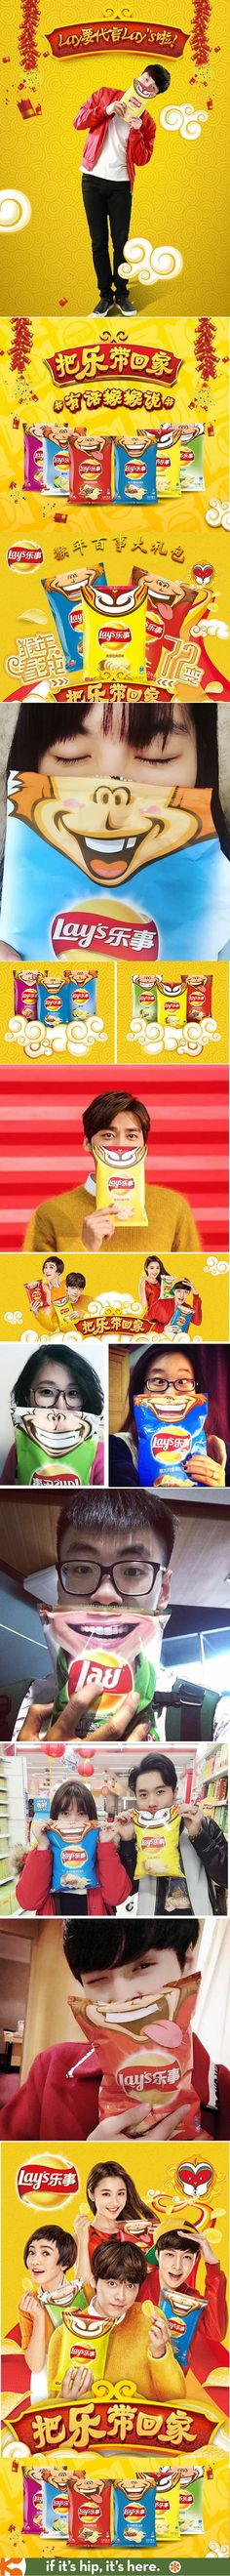 In honor of the Chinese Year of The Monkey, Lay's potato chips (in Asia) made a series of fun bags featuring monkey and animal mouths. An instant hit, people posed with bags all over Instagram.